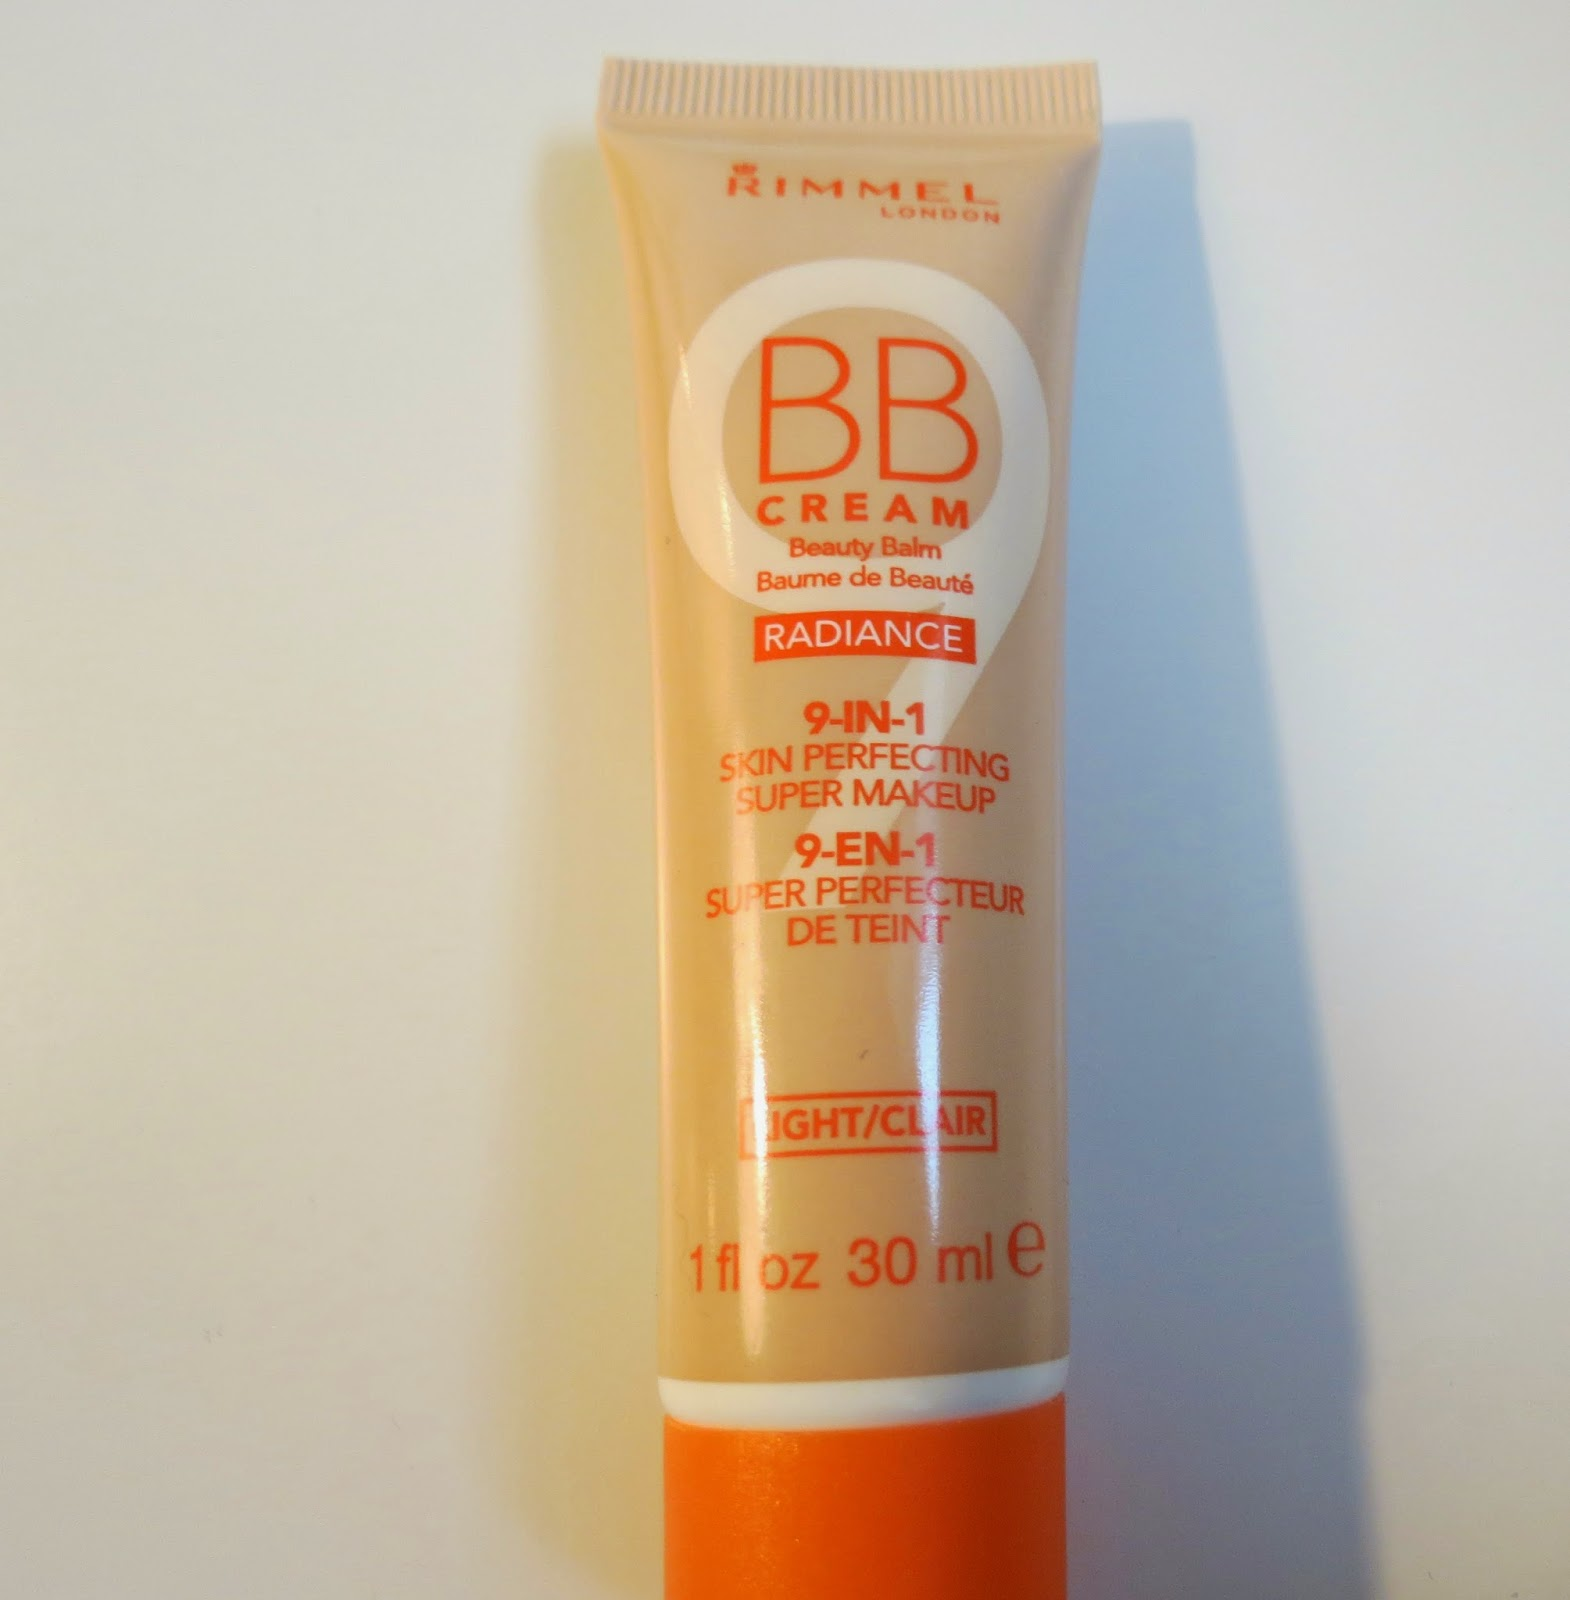 Rimmel BB Cream Review via www.productreviewmom.com